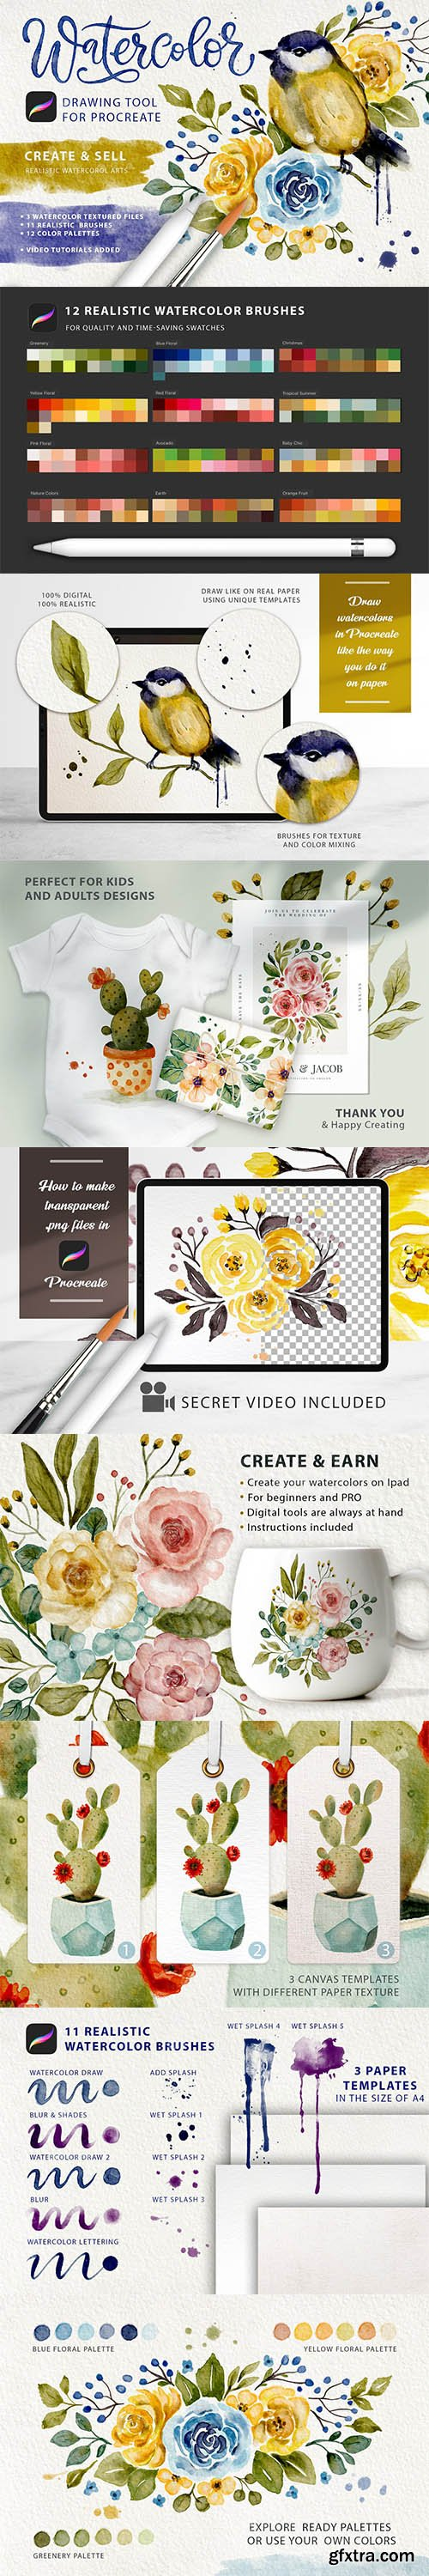 CreativeMarket - Watercolor Tool Kit for Procreate 5949386